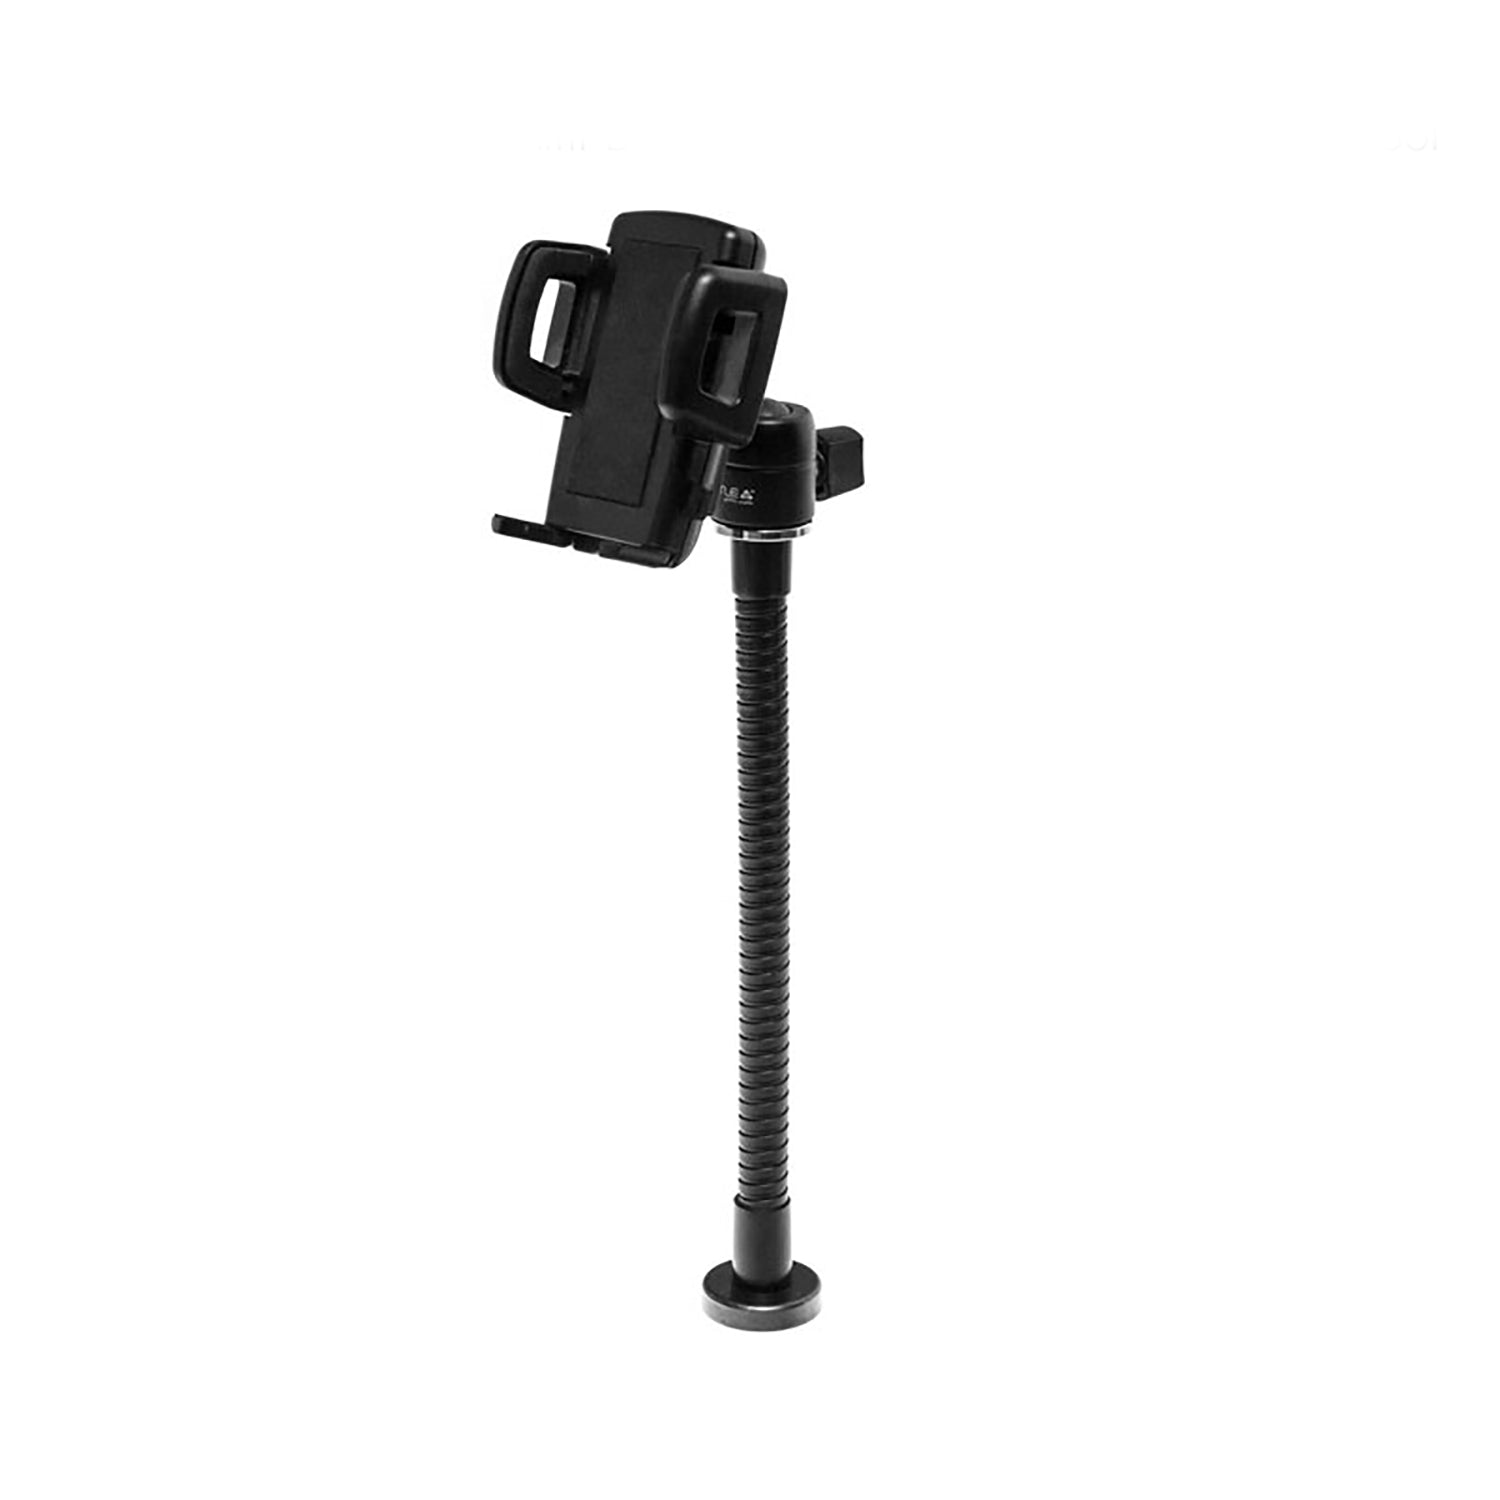 Grifiti Nootle Flexible Metal Gooseneck 1/4-20 for Cameras, Music, Mic, Video - Grifiti